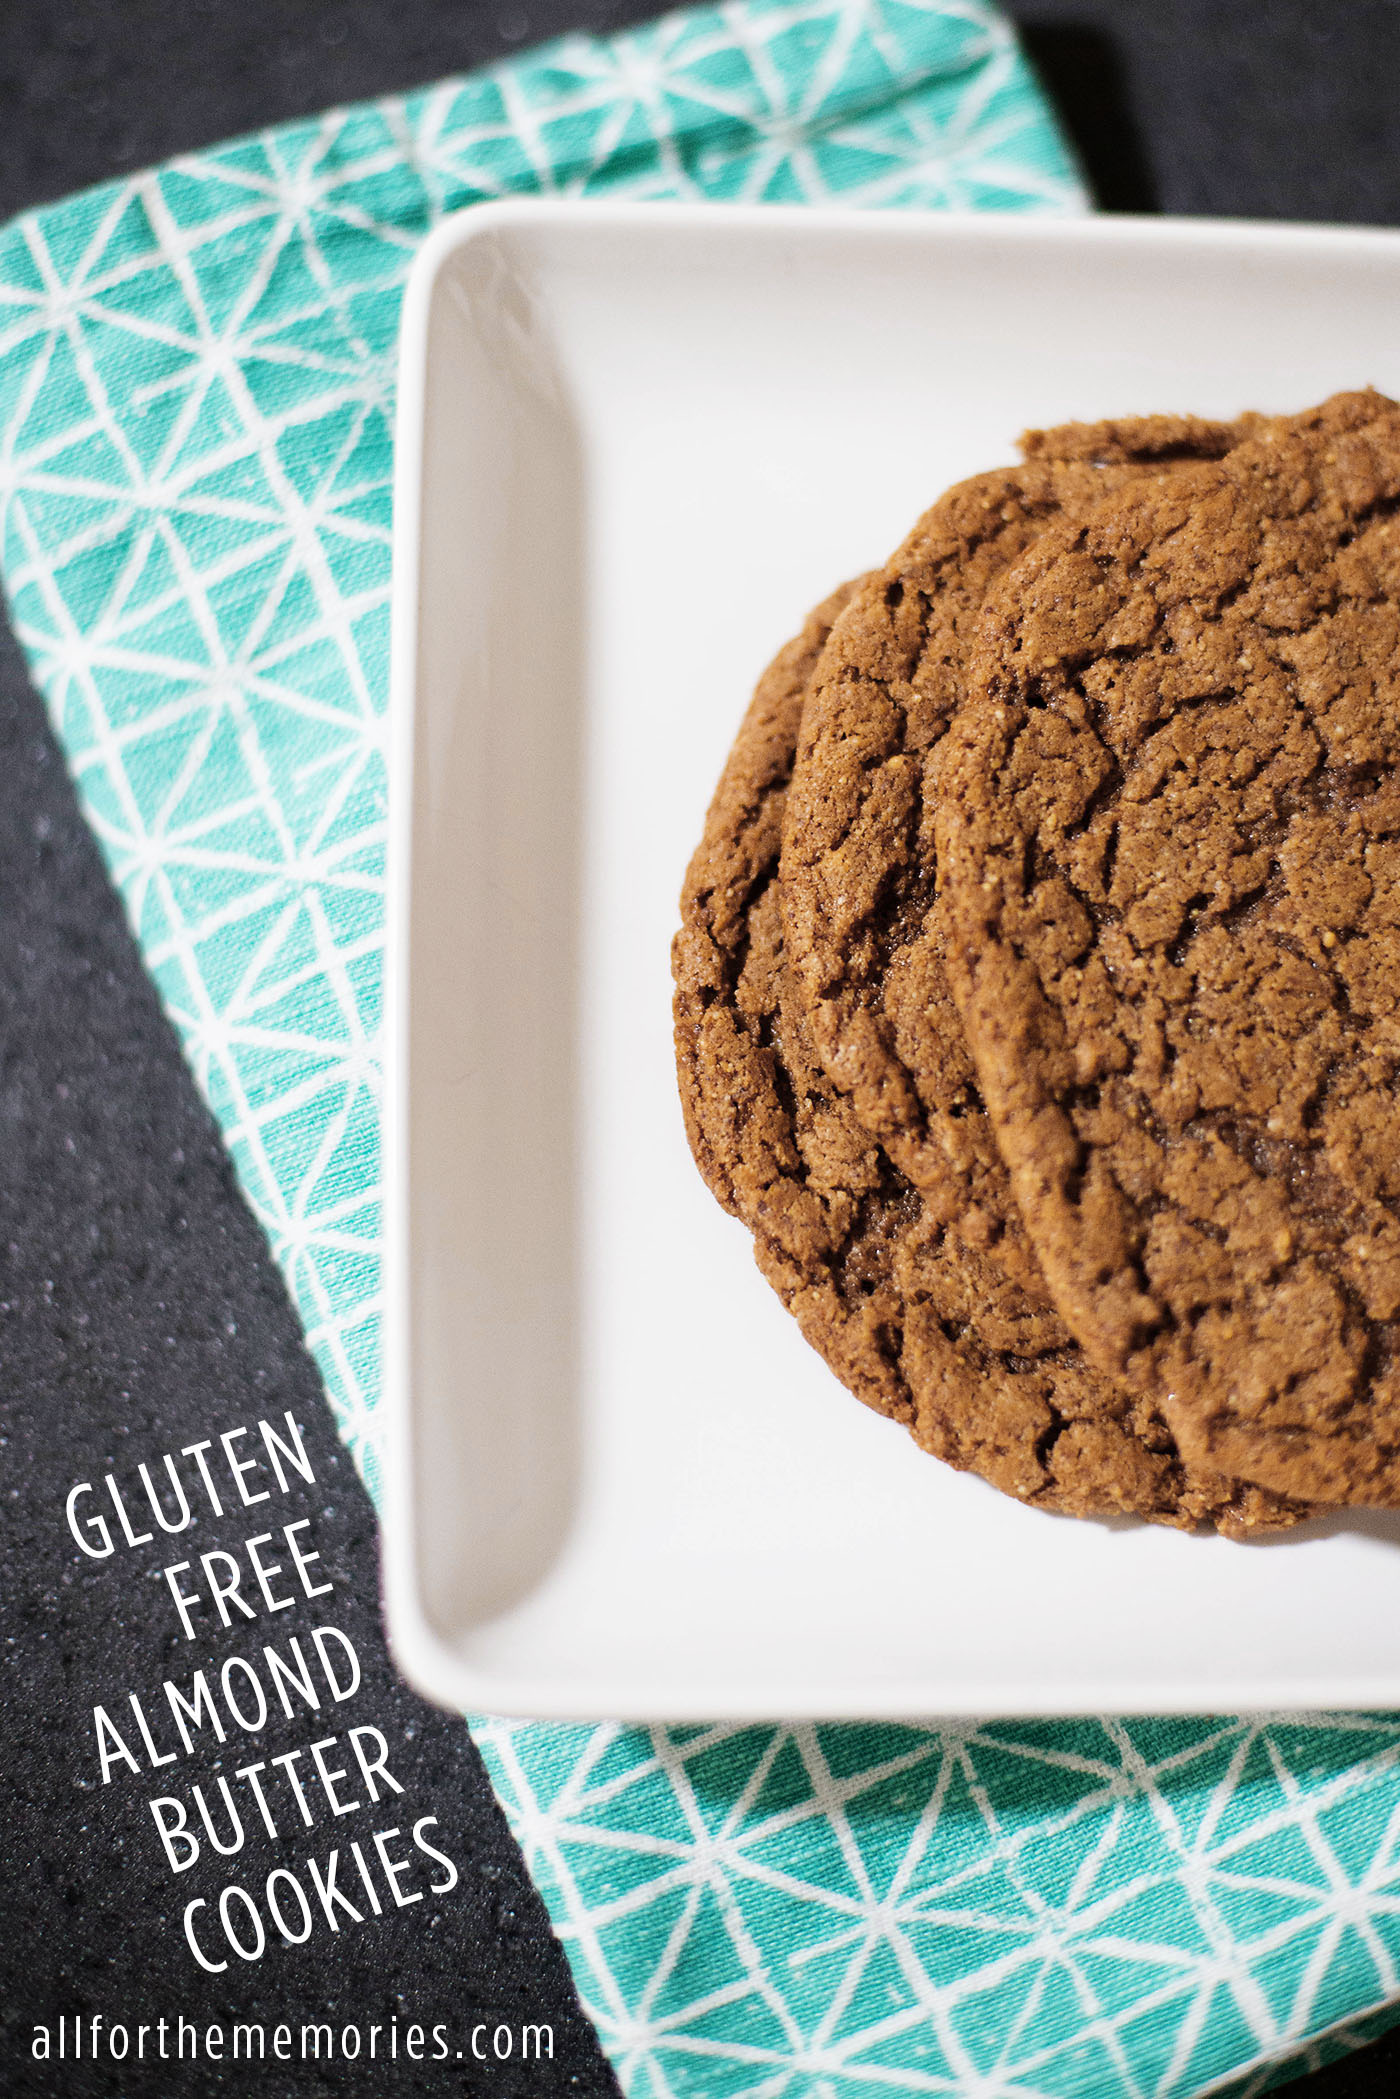 Chewy gluten free, grain free almond butter cookies - add cocoa powder or chocolate chips to change up the flavor a bit!